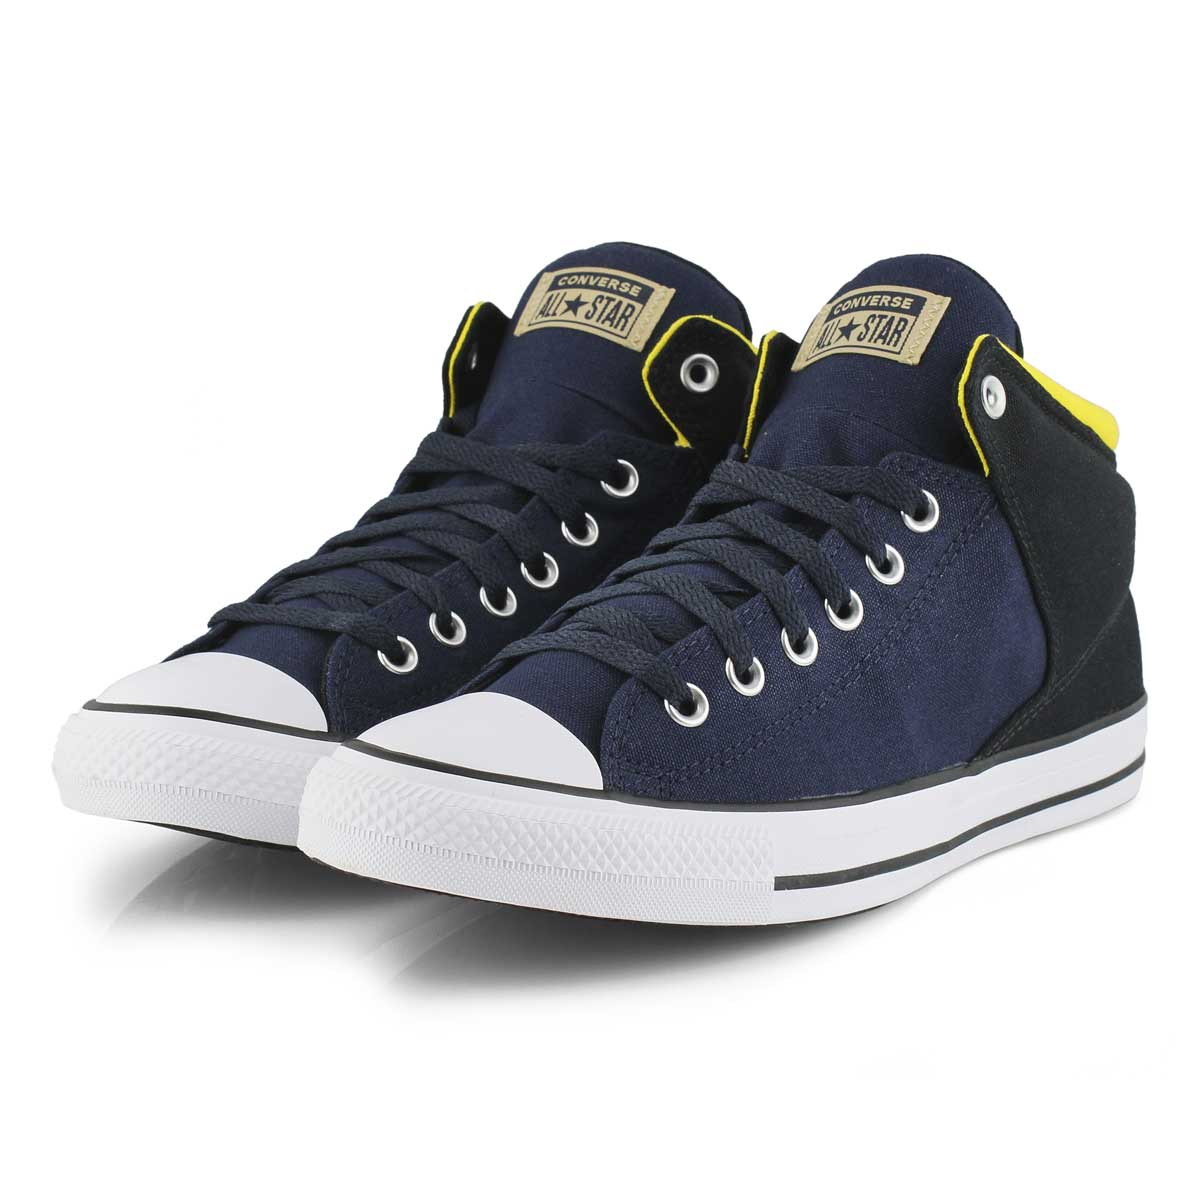 Mns CT A/S High Street blk/yellow hi top